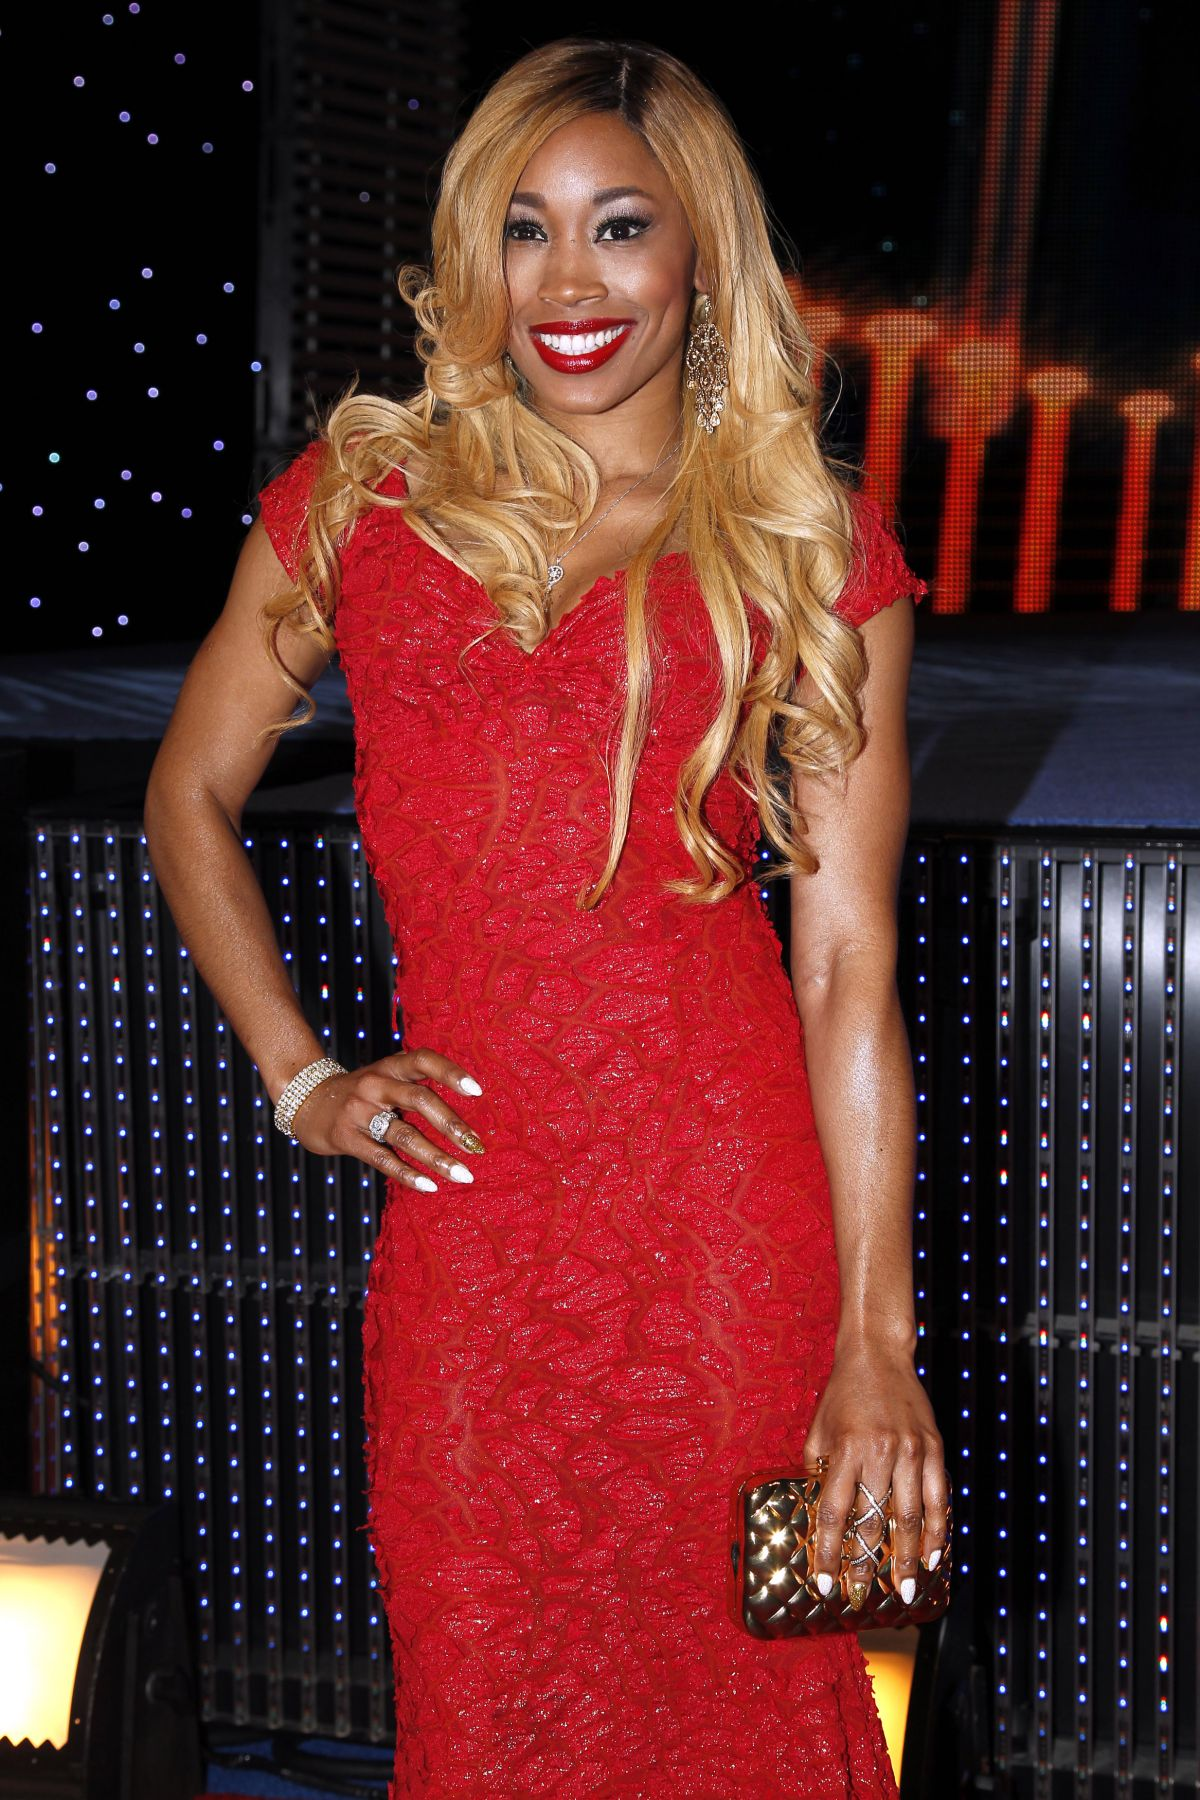 CAMERON (ARIANE ANDREW) at WWE Hall of Fame Induction Ceremony